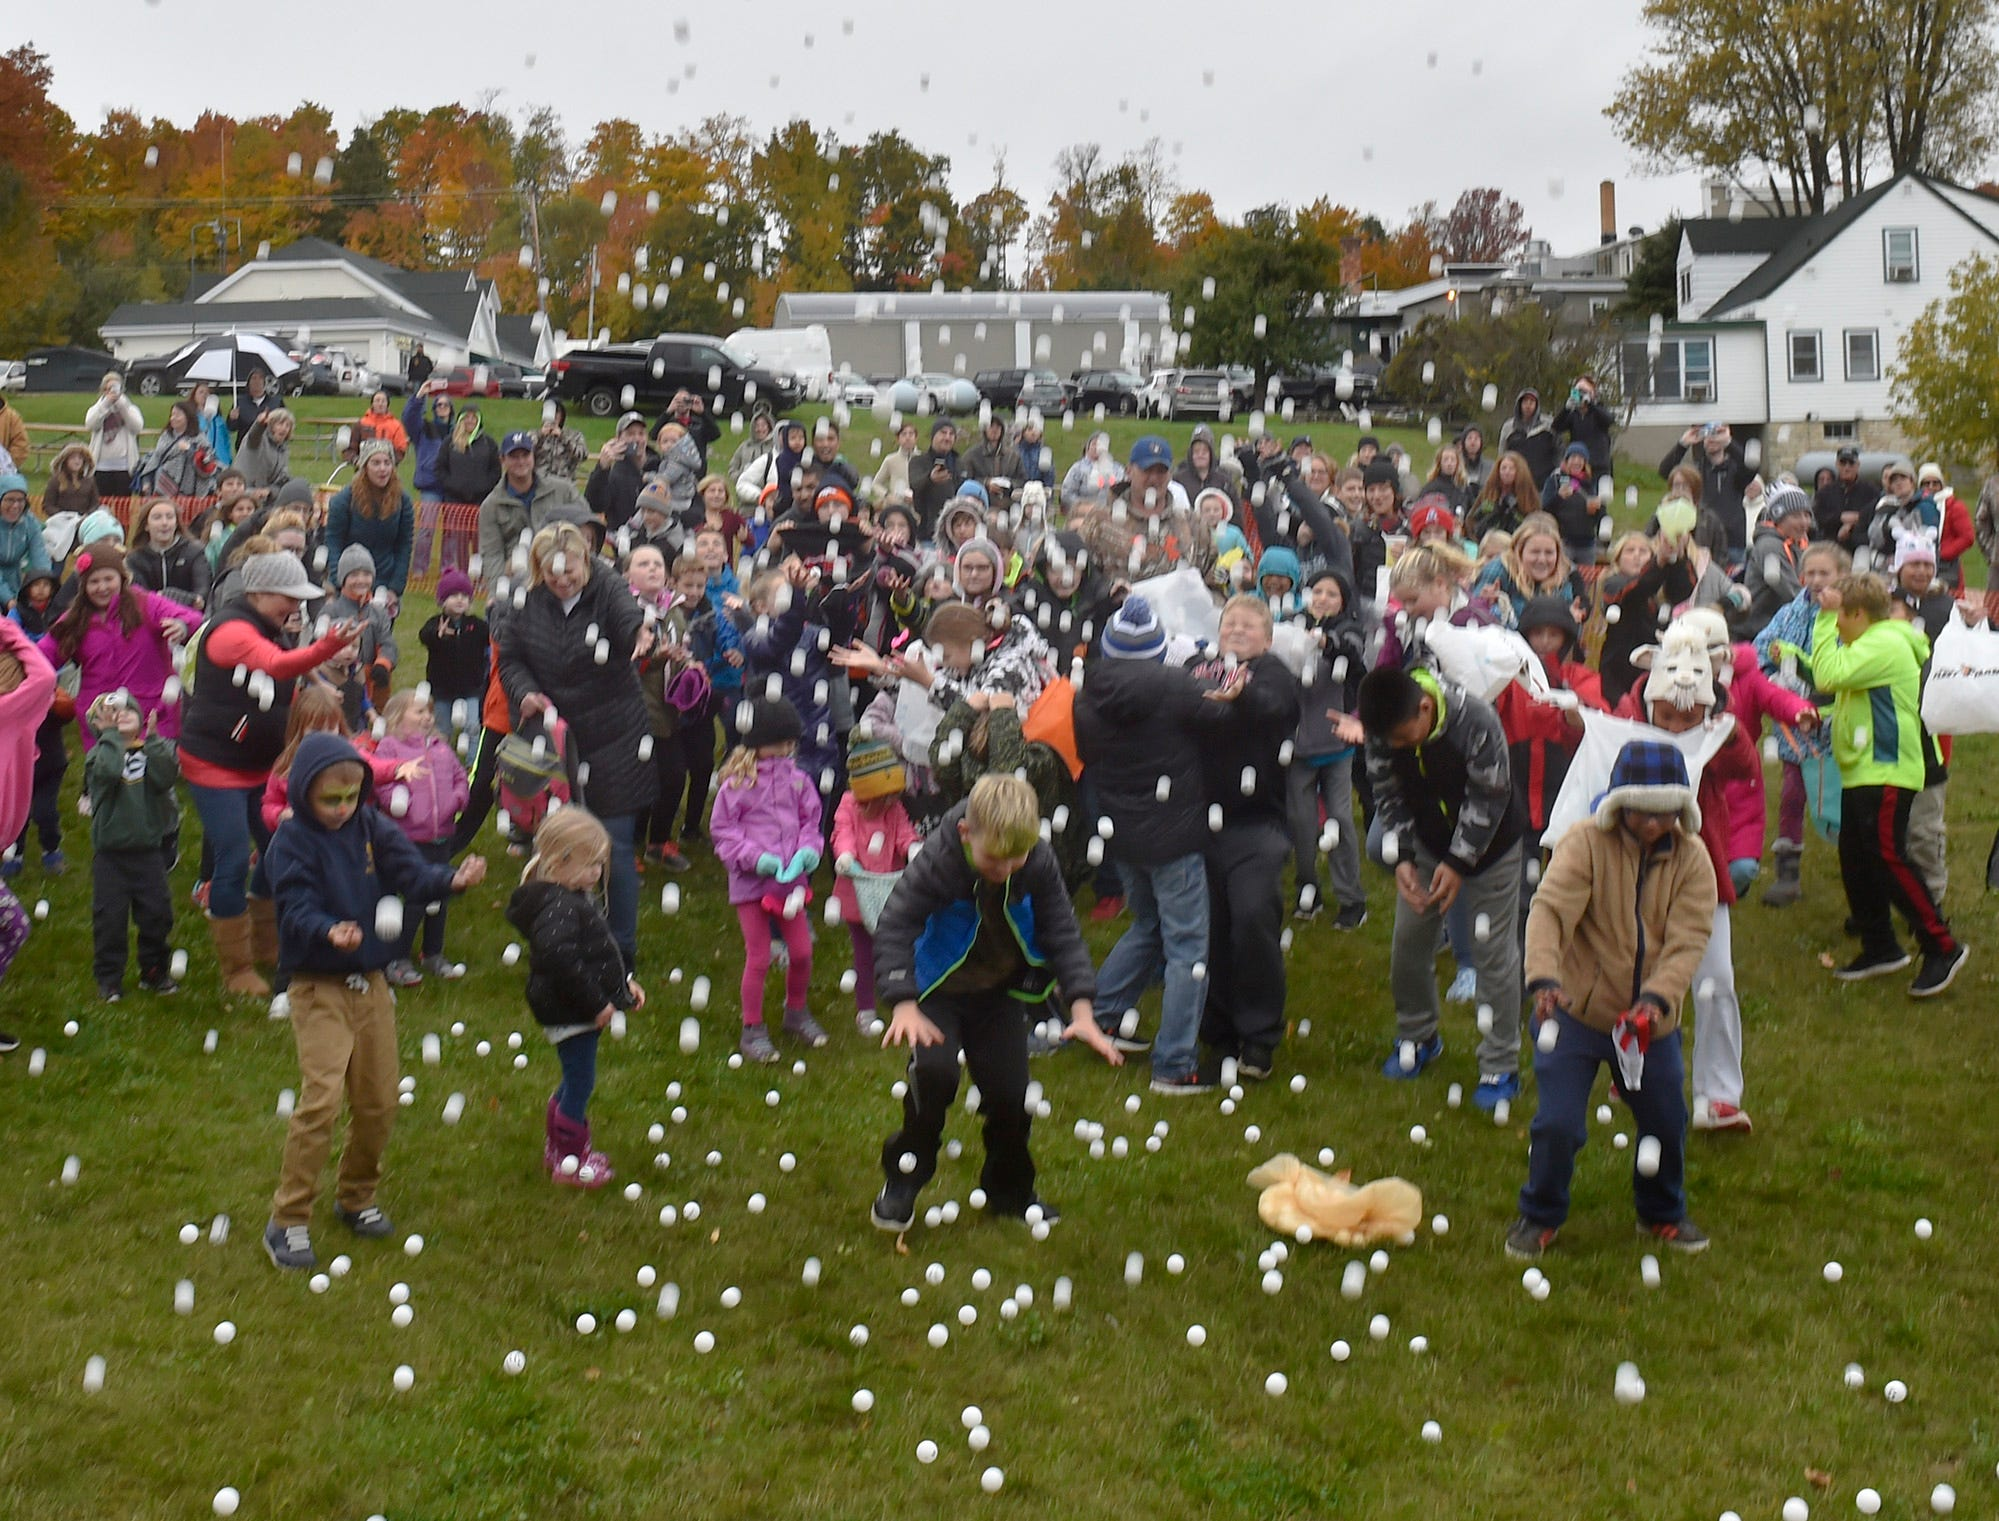 It is raining pingpong balls in the children's area during the 73rd annual Sister Bay Fall Fest's popular pingpong drop on Oct 14, 2018. Tina M. Gohr/USA TODAY NETWORK-Wisconsin